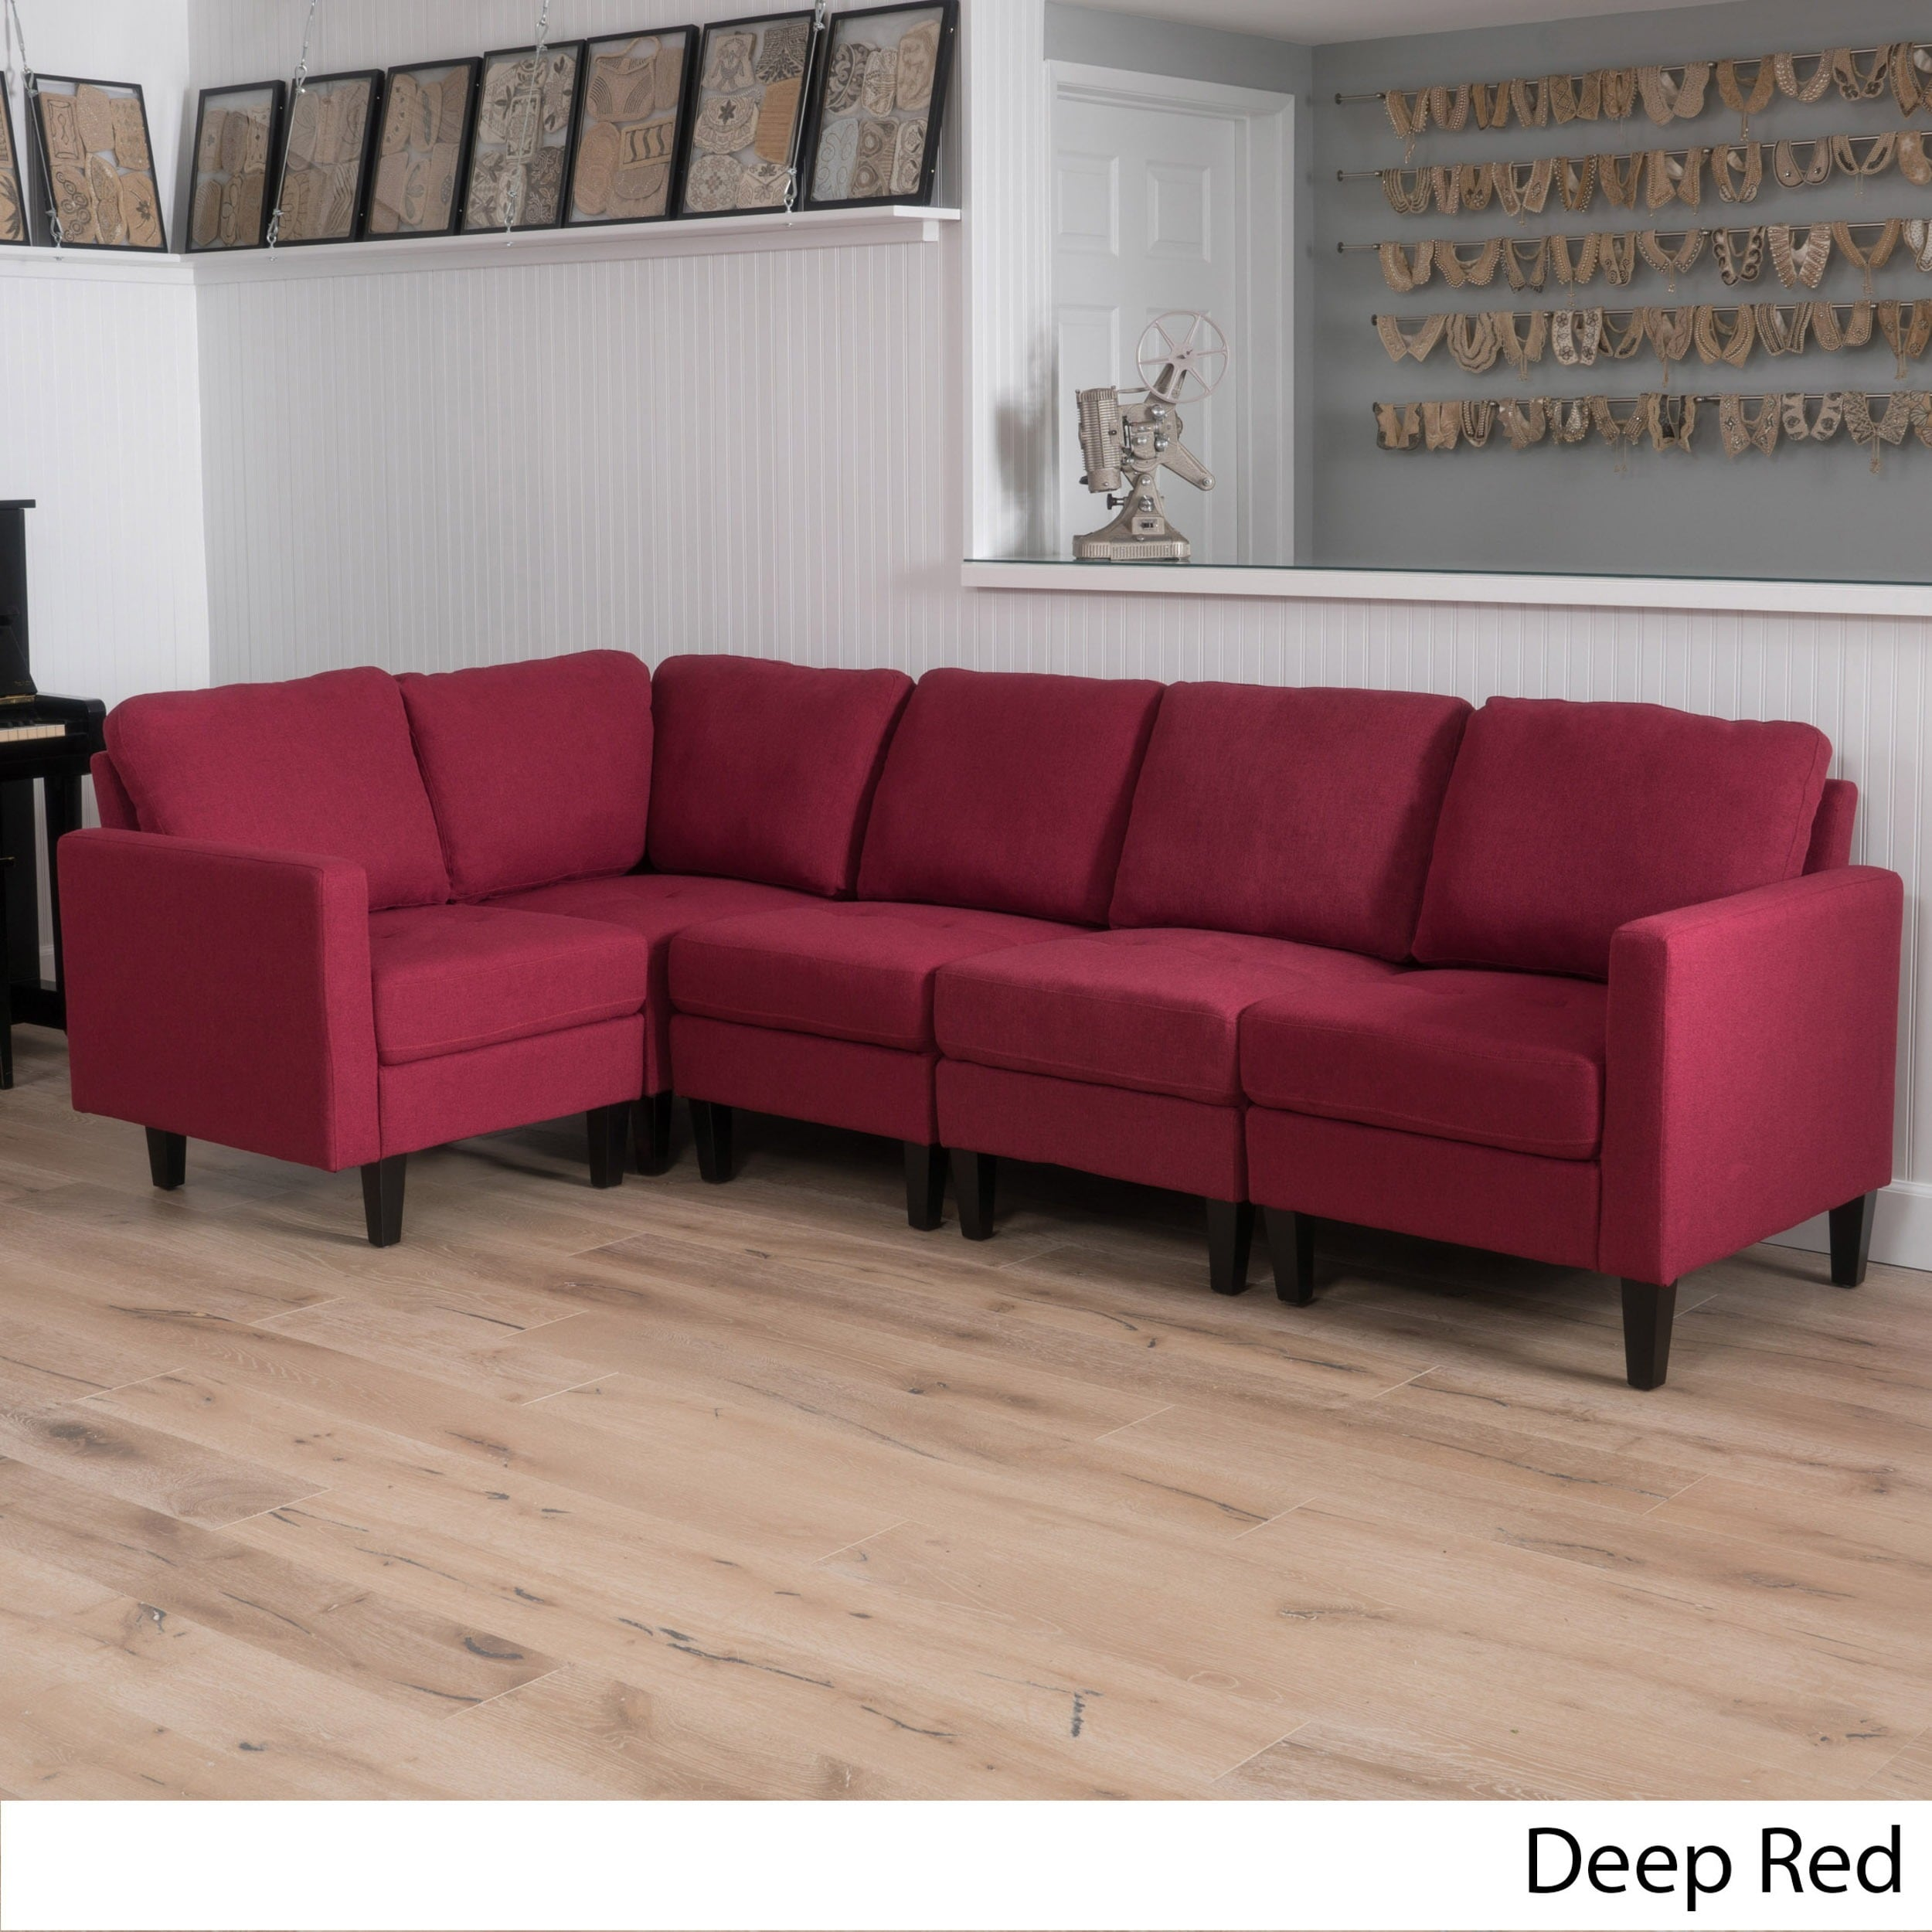 Shop zahra 5 piece fabric sofa sectional by christopher knight home on sale free shipping today overstock com 14057138